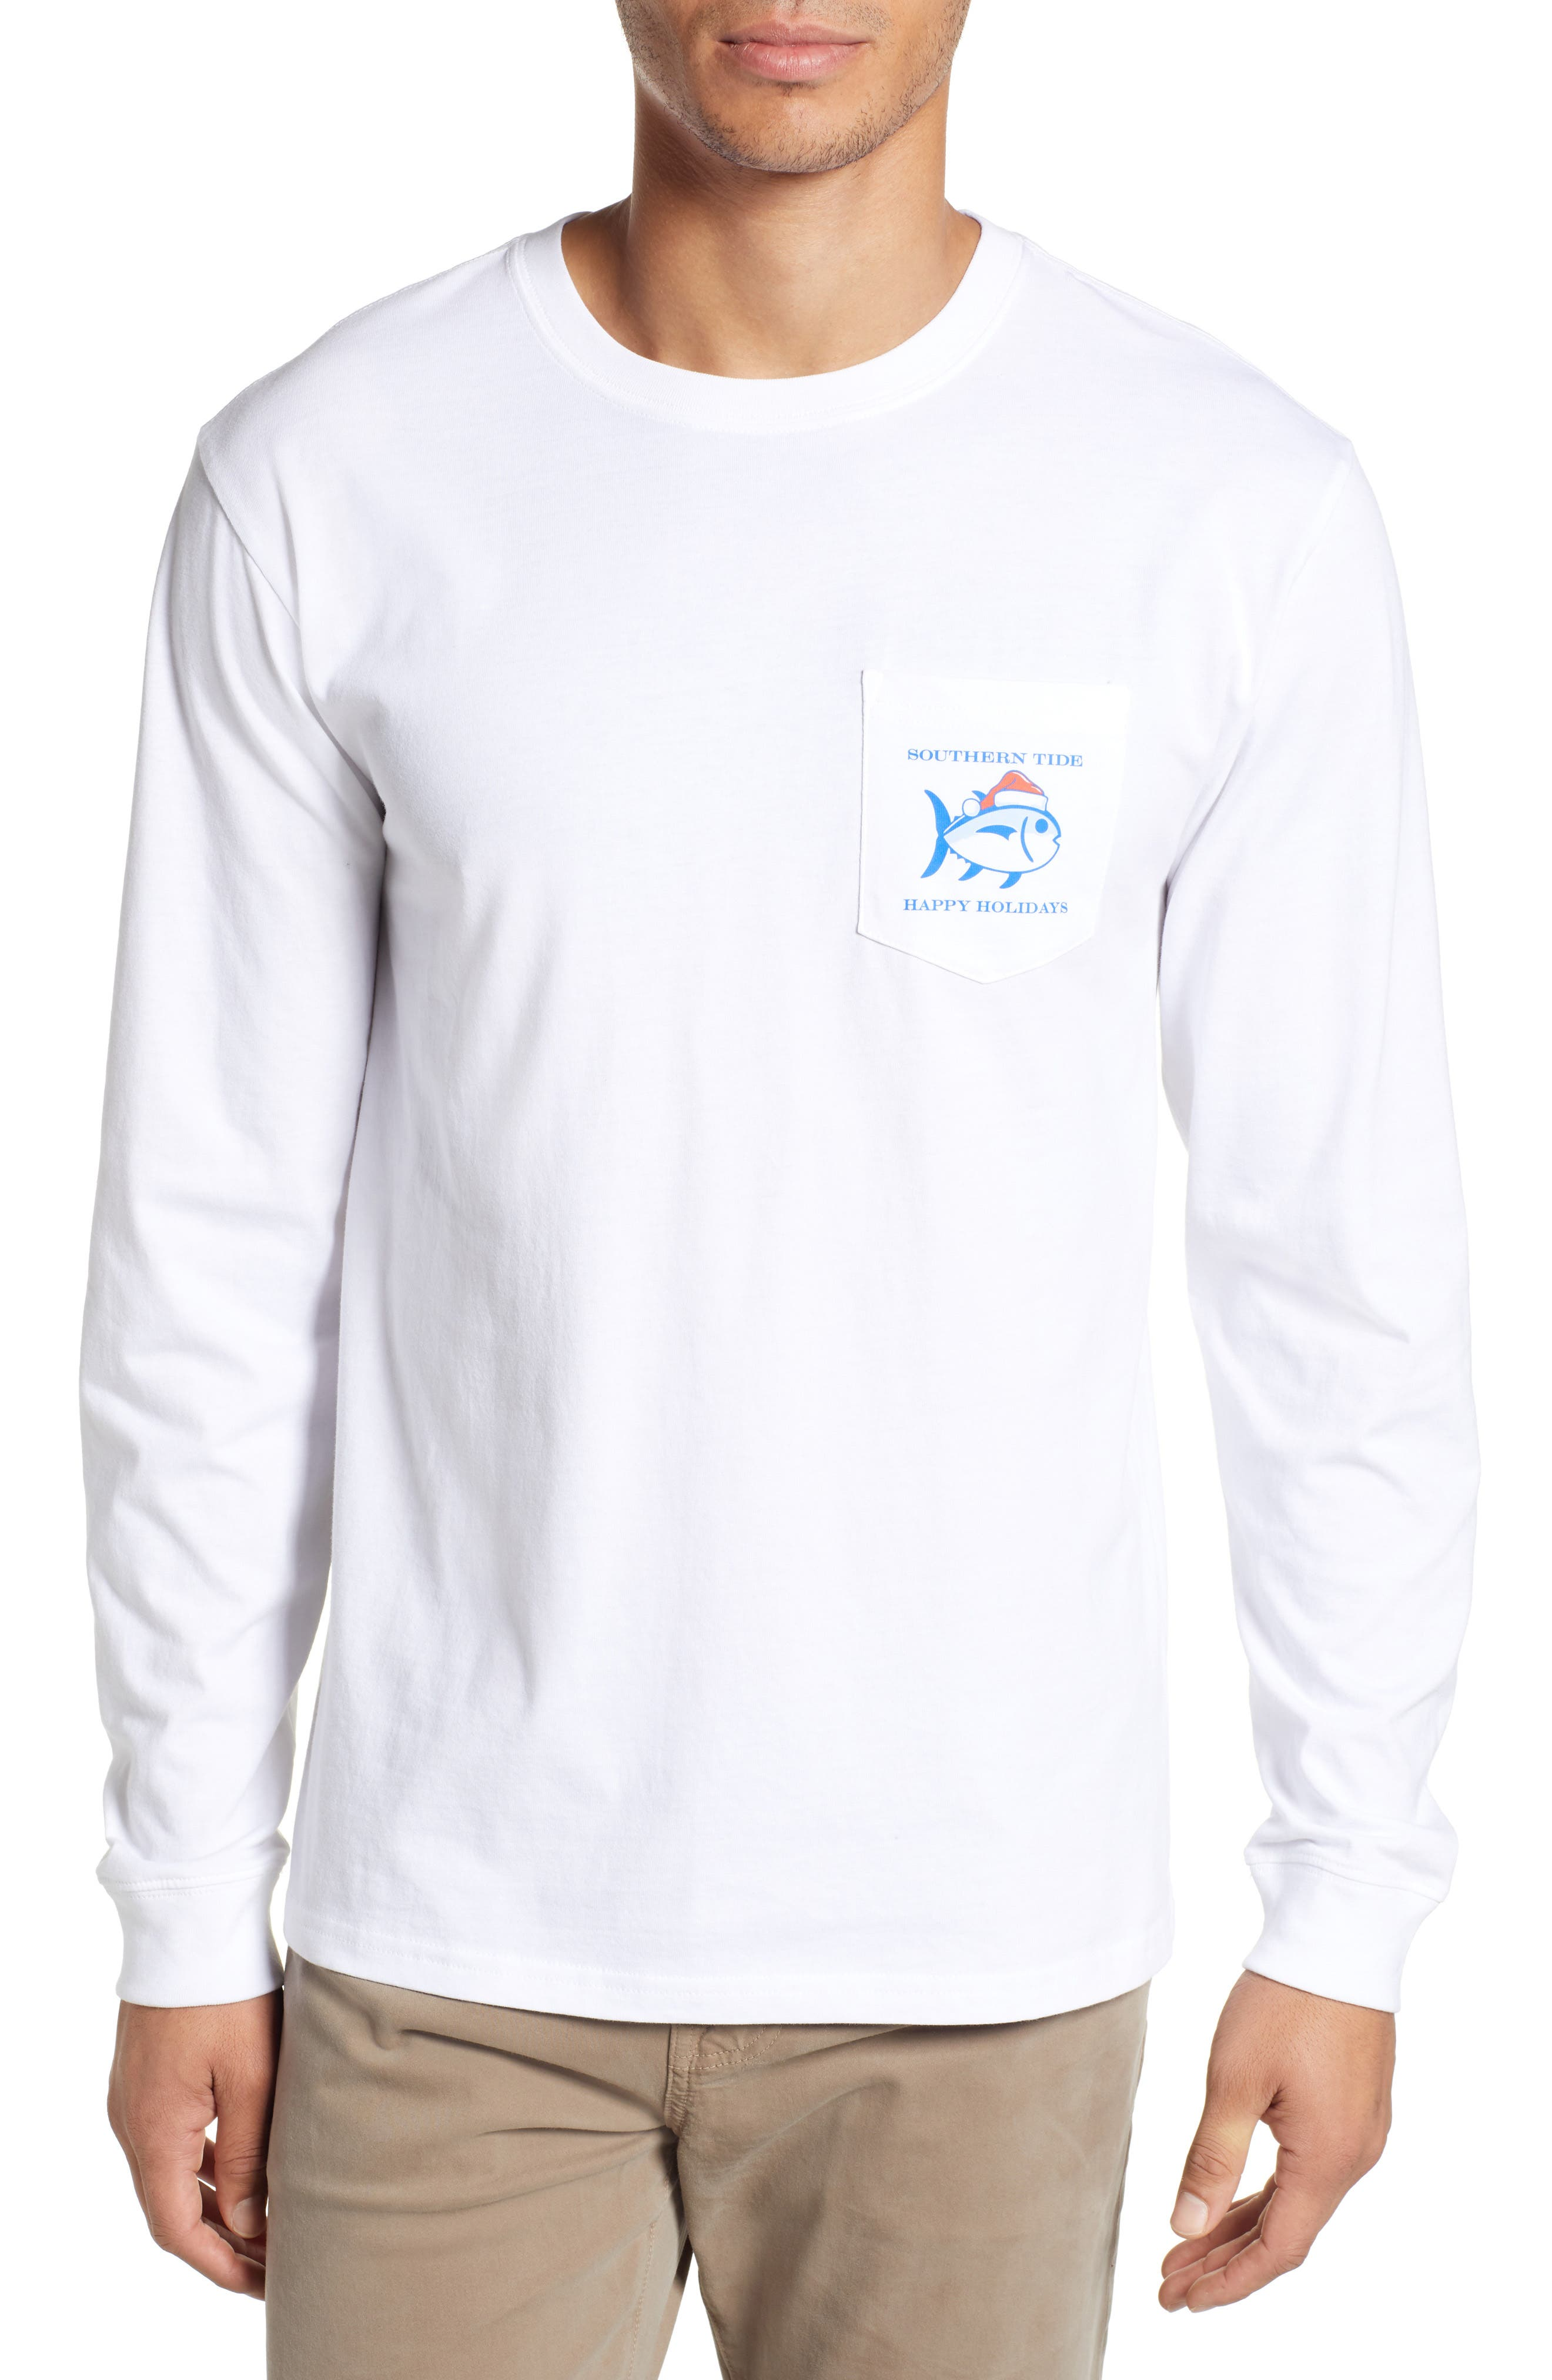 SOUTHERN TIDE 'Twas The Day After Christmas T-Shirt in Classic White